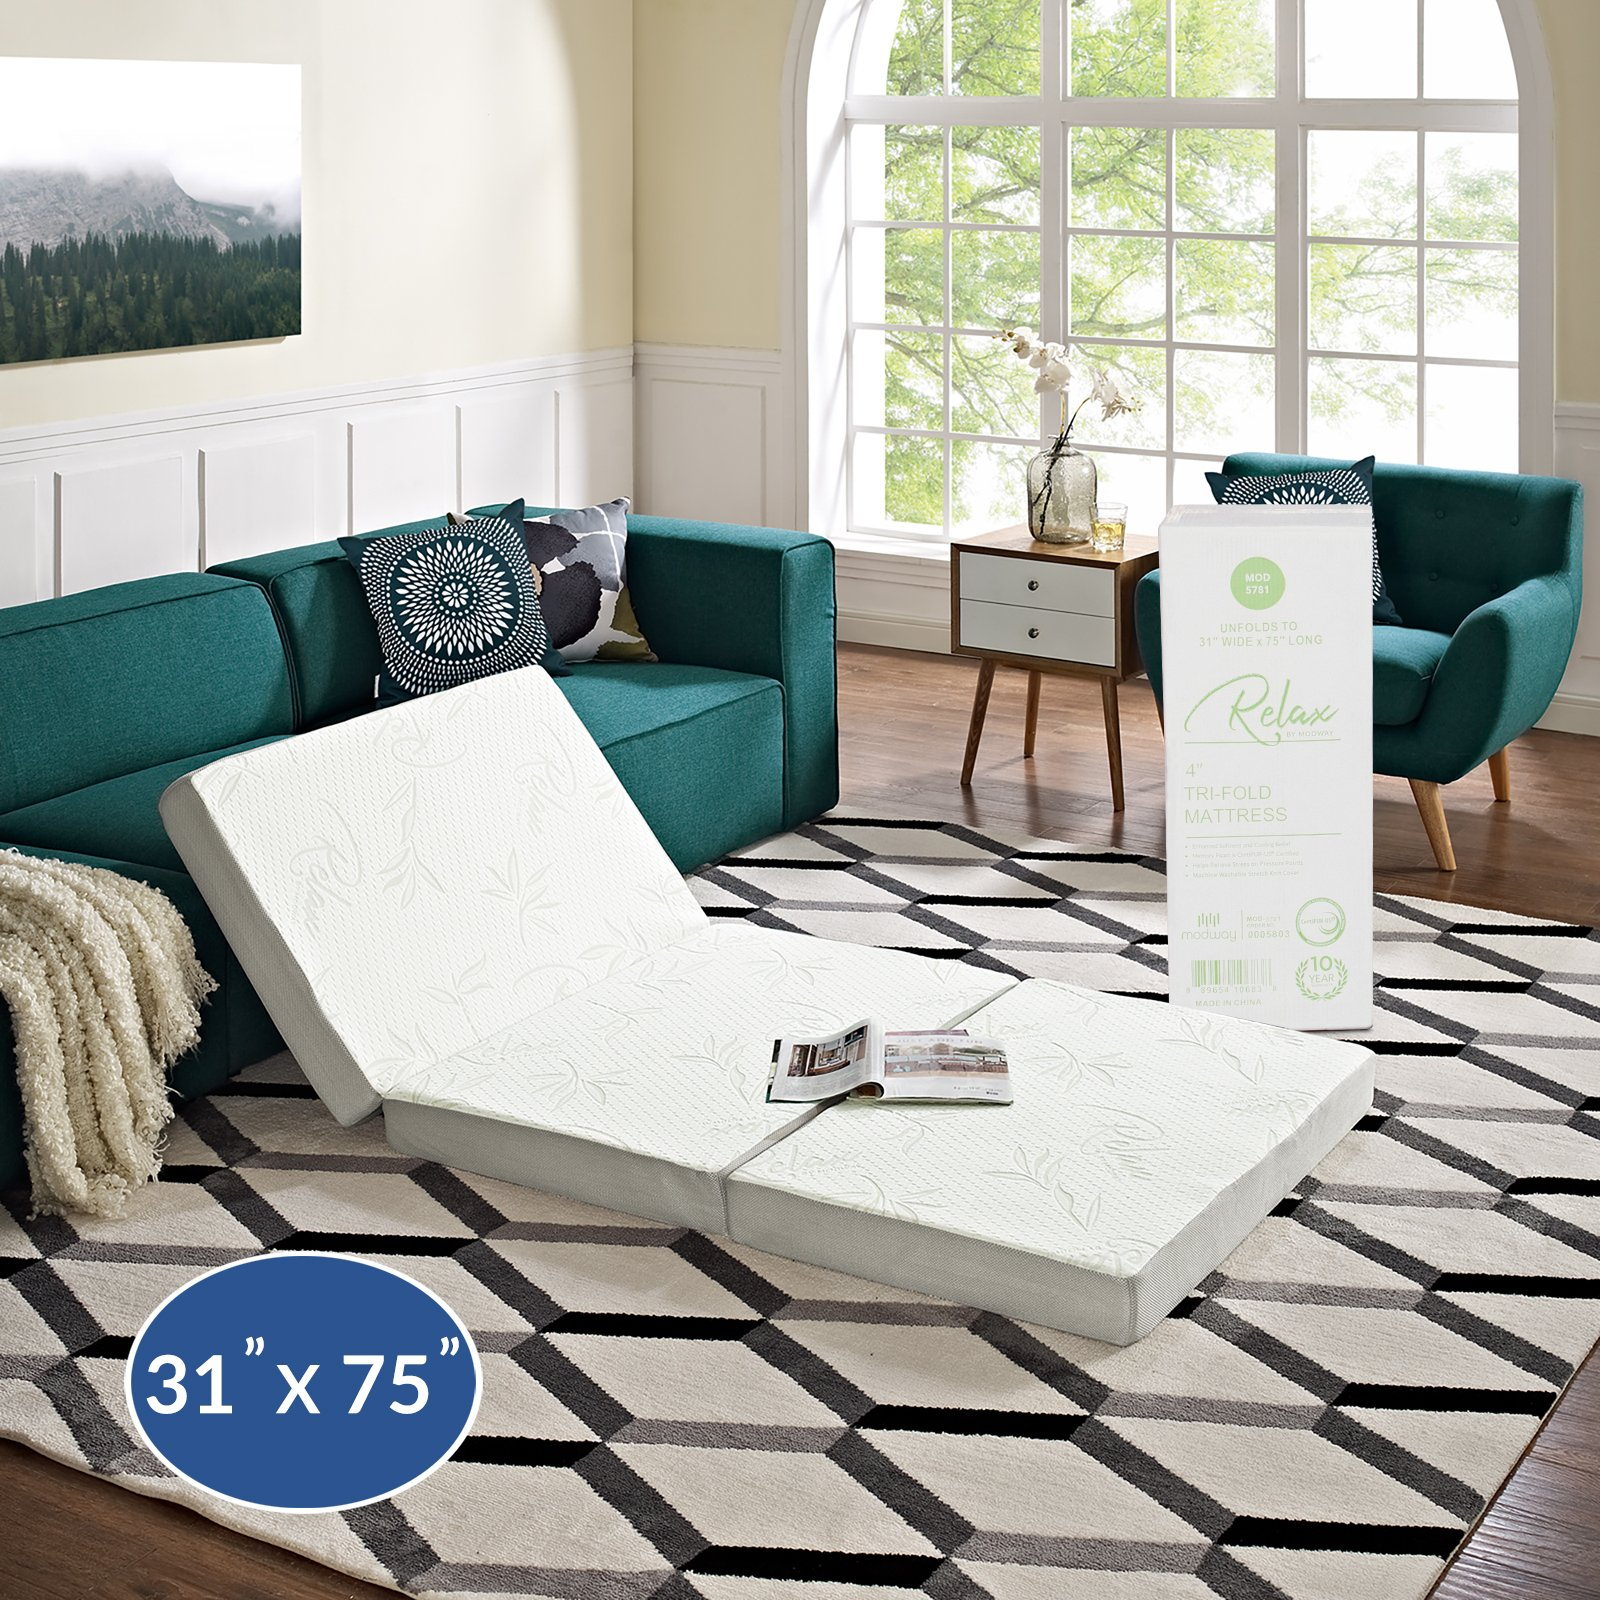 """Modway 4"""" Relax Tri-Fold Mattress CertiPUR-US Certified with Soft Removable Cover and Non-Slip Bottom (31'' x 75"""") - 10-Year Warranty"""